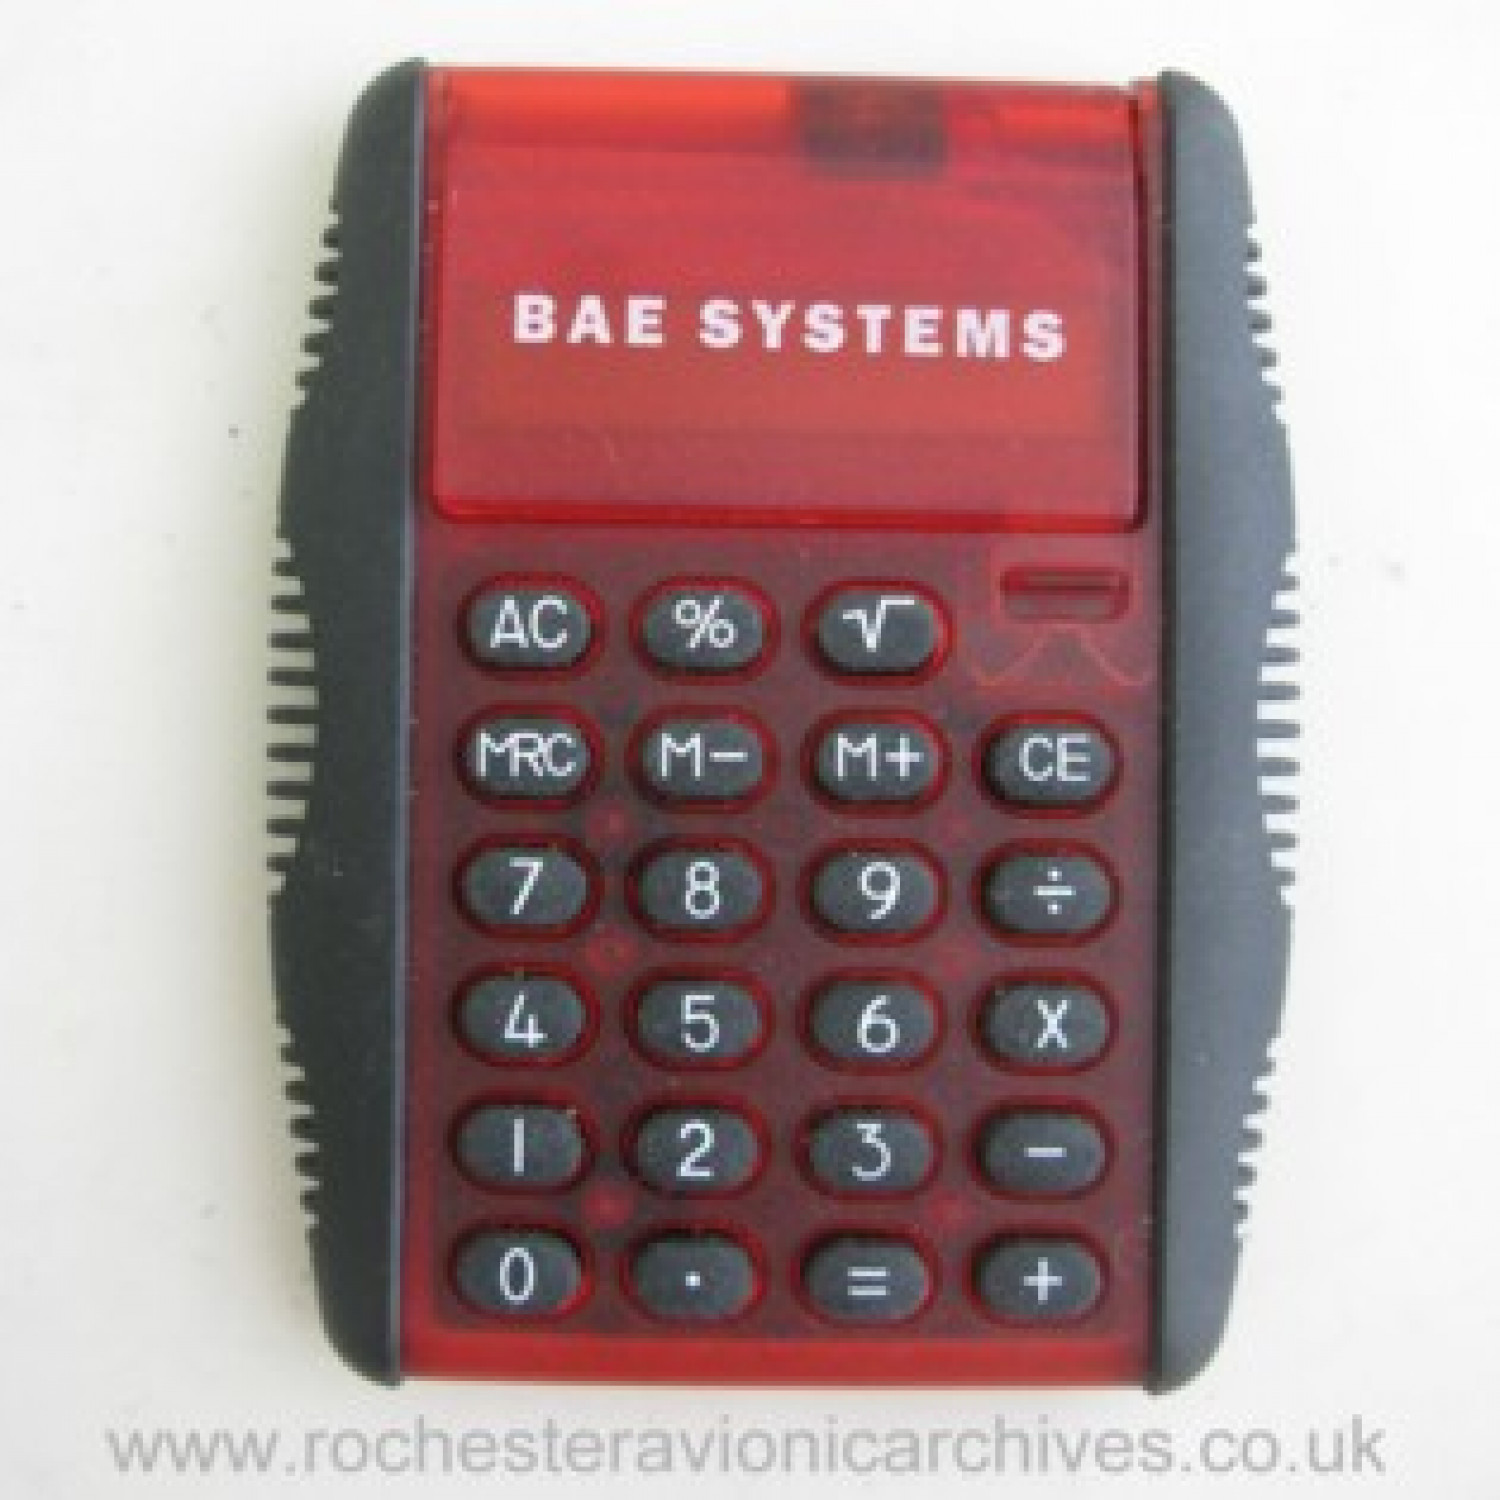 BAE SYSTEMS Calculator